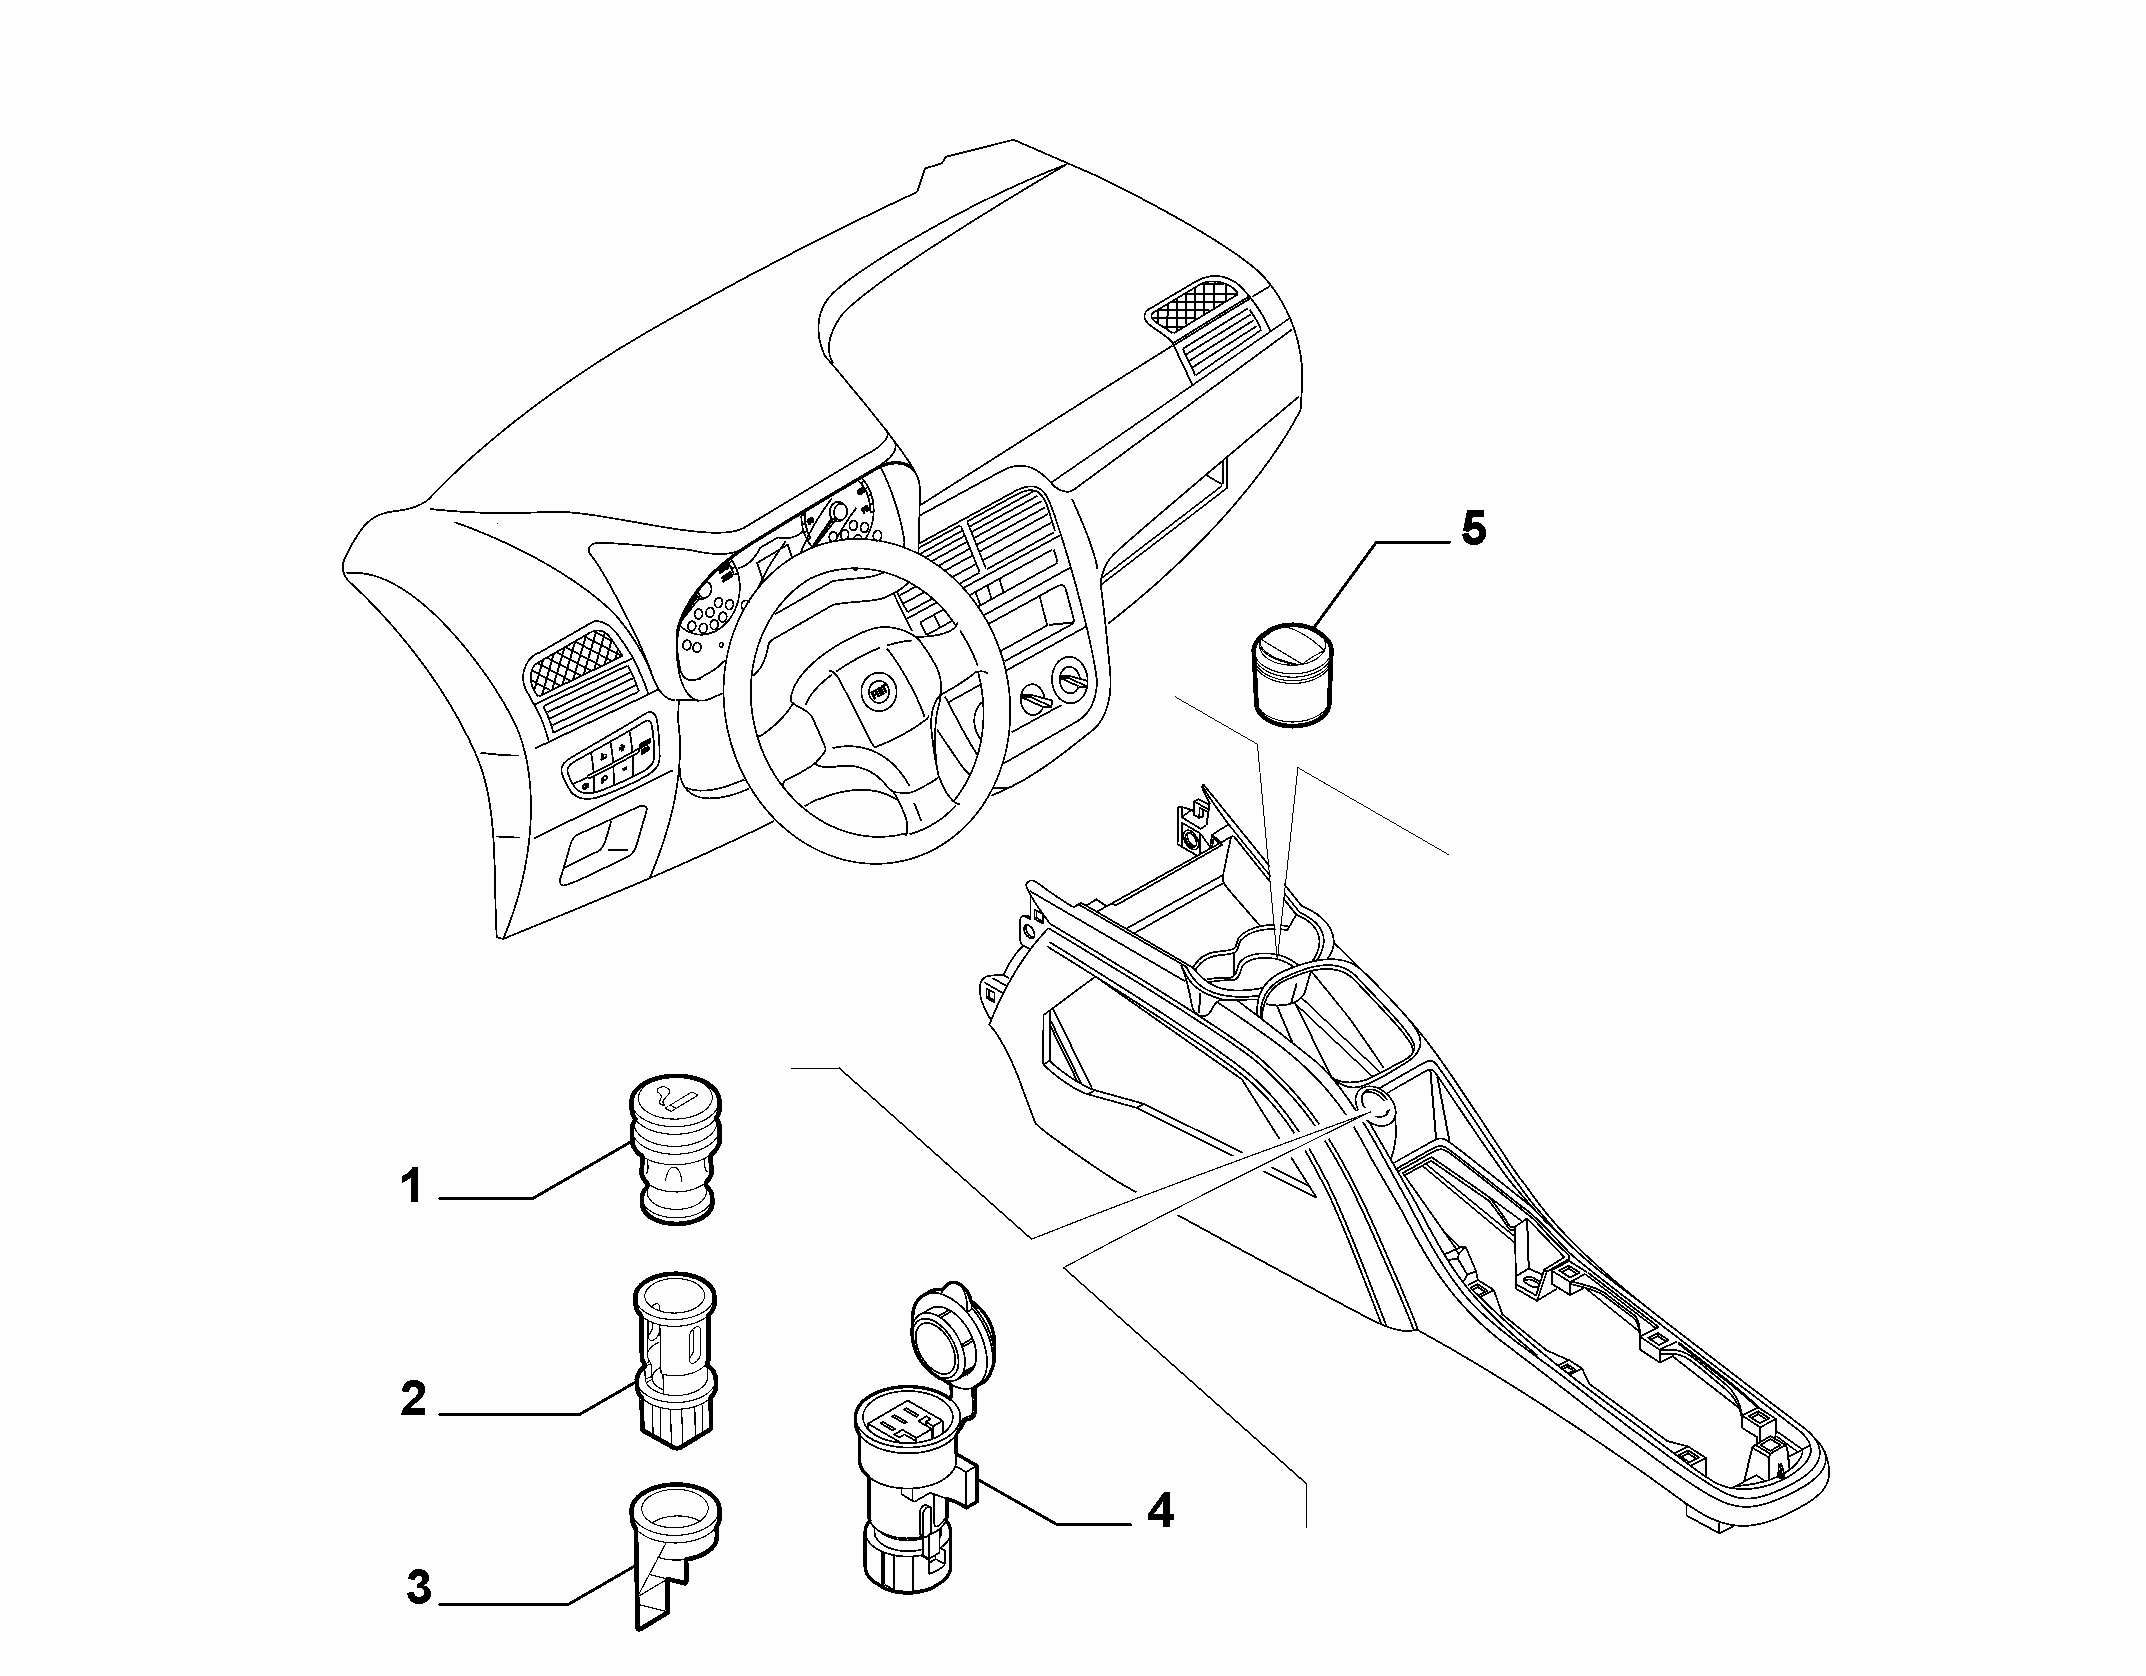 70504-030 ASHTRAY AND ACCESSORIES